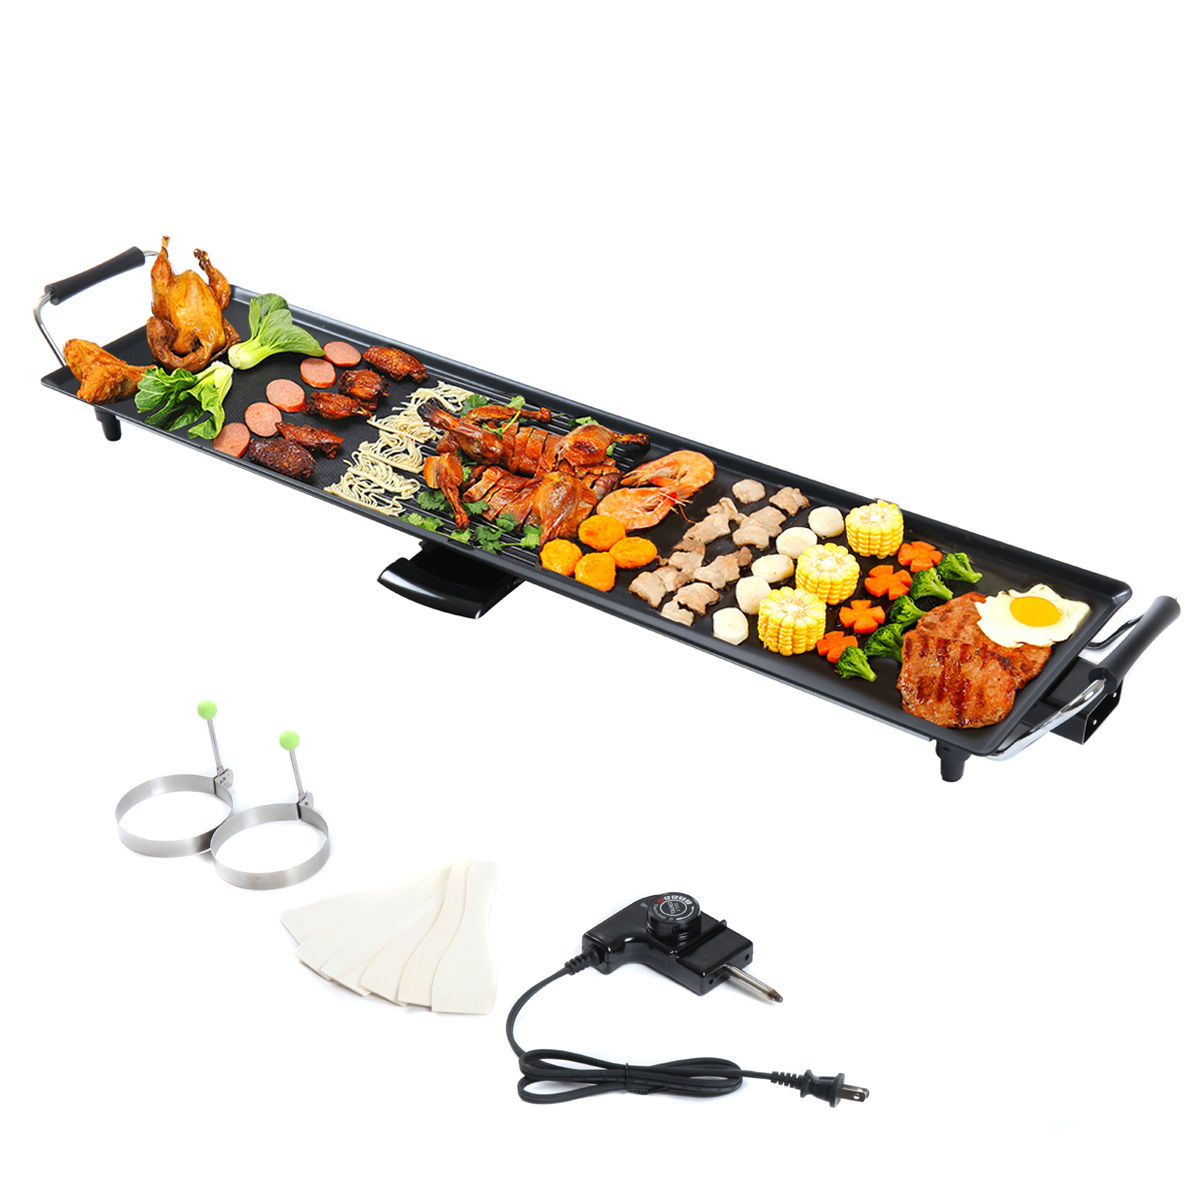 "Lazymoon Electric Nonstick Griddle 35"" X 9"" Family Size Teppanyaki Griddle Kitchen Grill Pancake for BBQ Indoor for BBQ Indoor Outdoor"